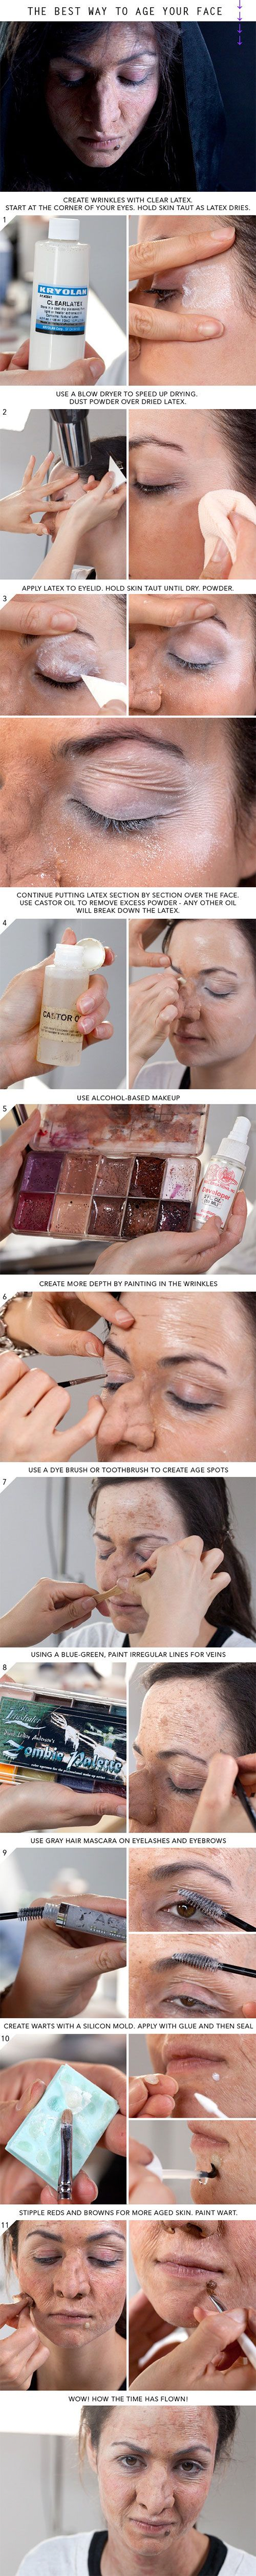 15-Step-By-Step-Halloween-Make-Up-Tutorials-For-Beginners-Learners-2014-16